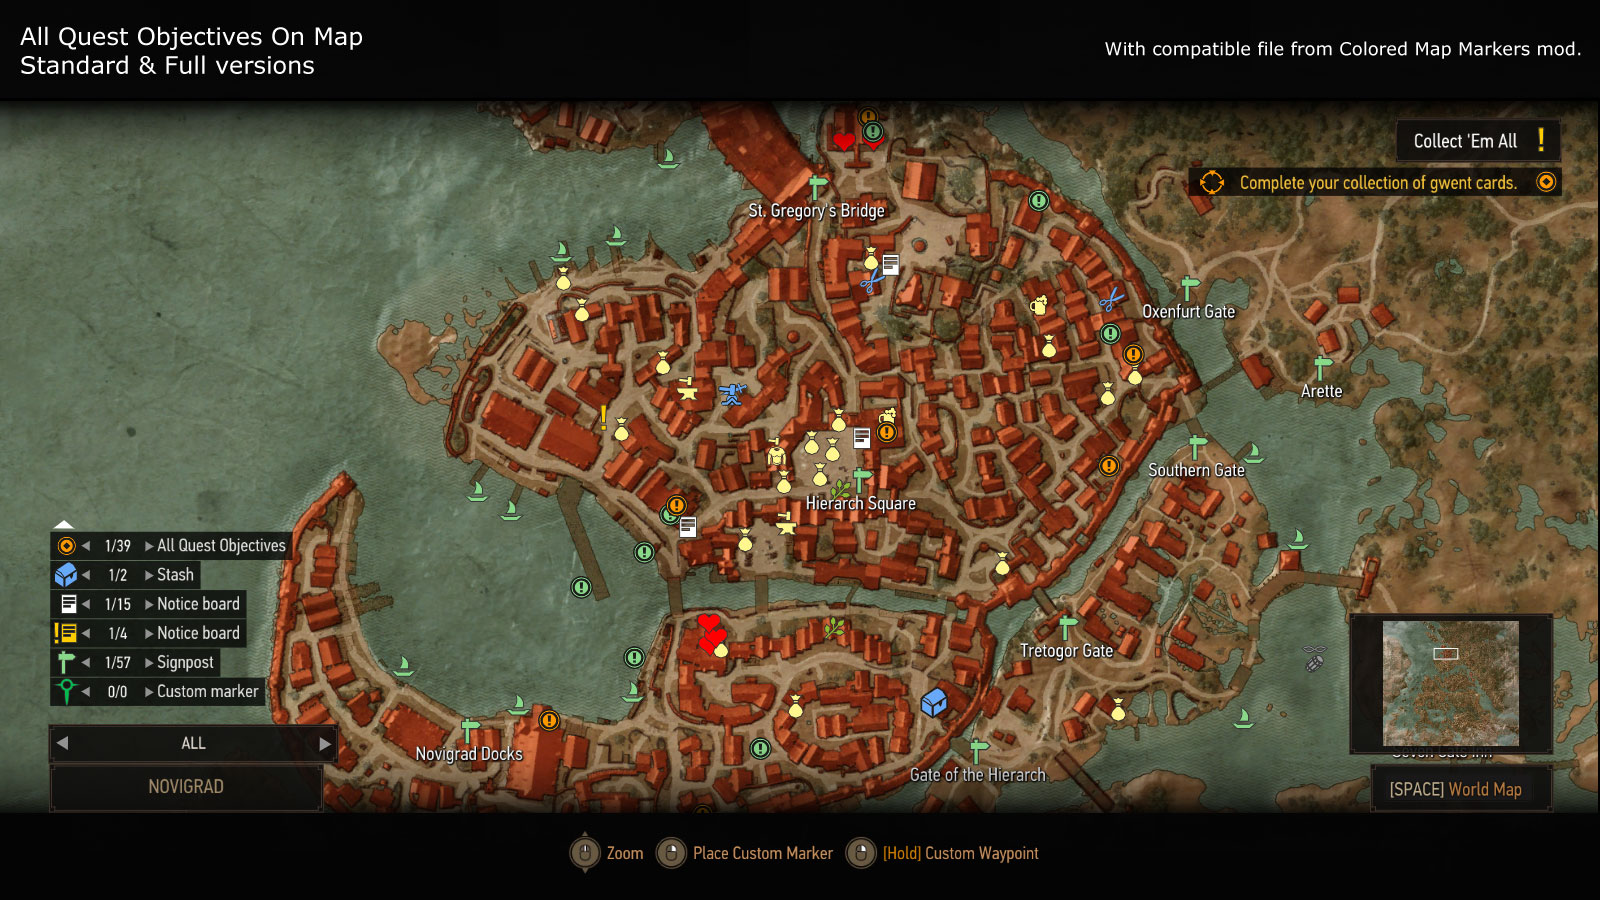 Best Witcher 3 Mods - Quest objectives on map